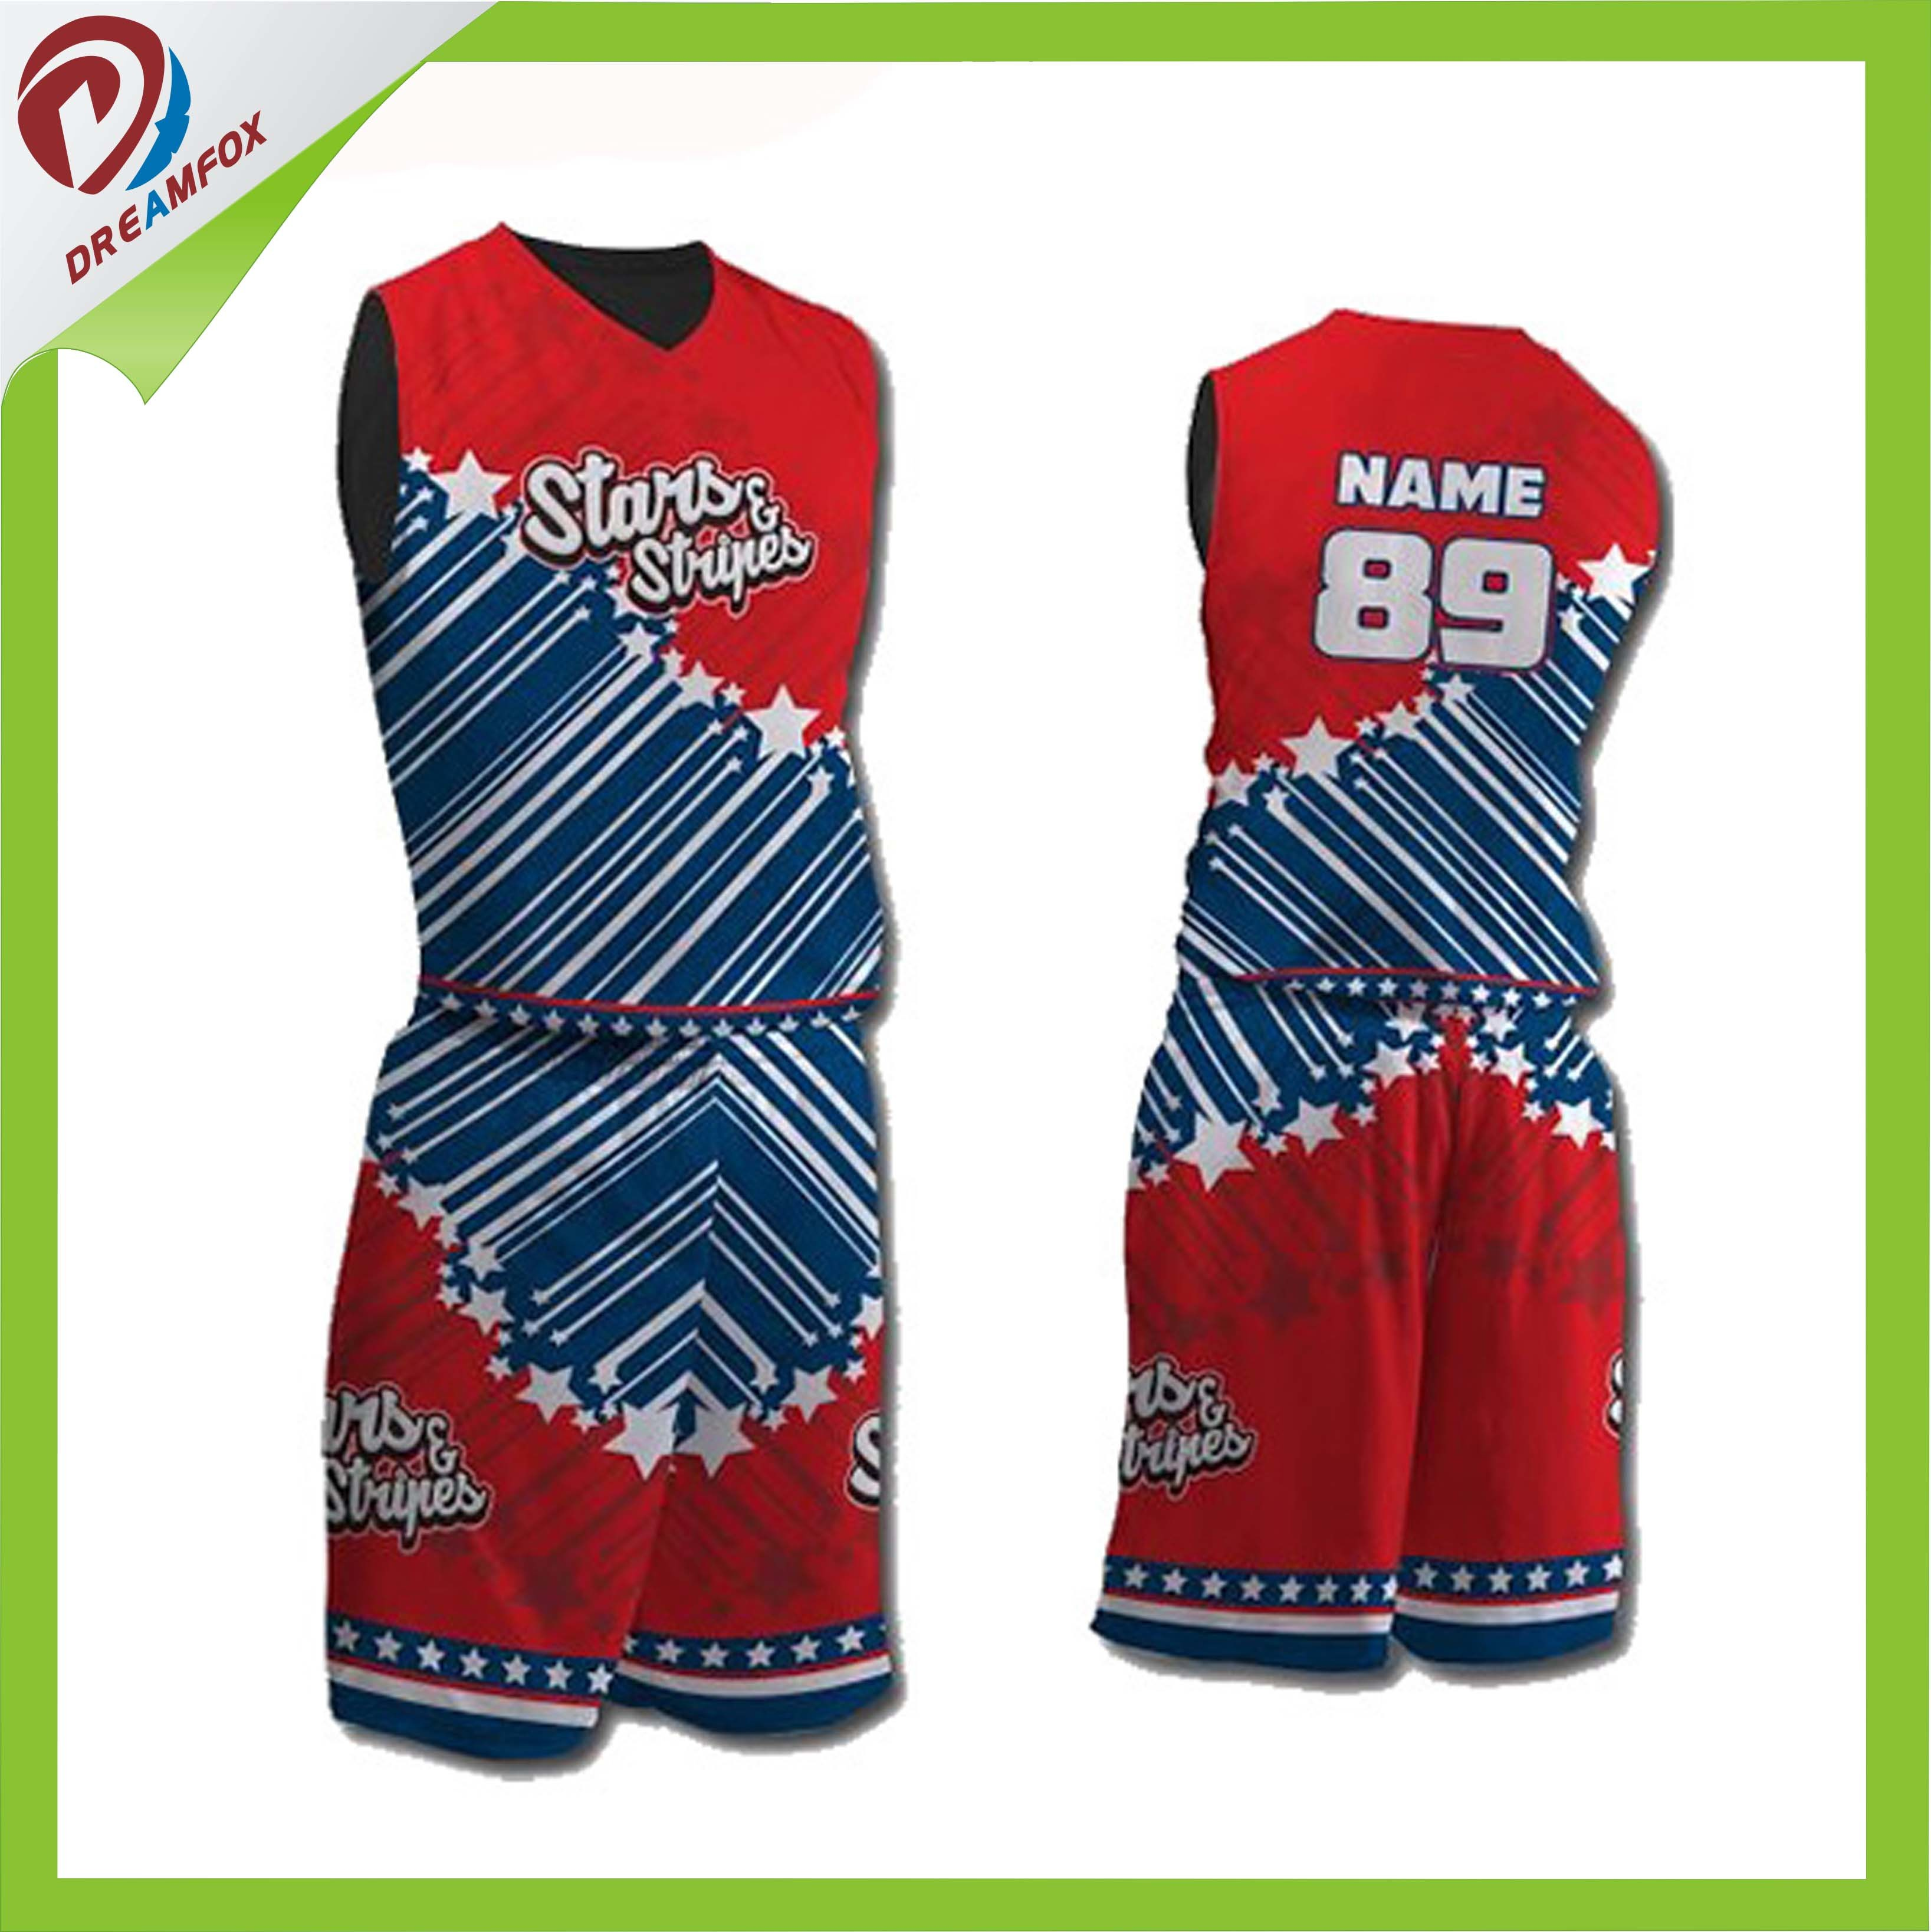 97903c0dd99 China 100%Polyester Custom Fashion Sublimation Basketball Jersey Black and  Red - China Basketball Jersey Black and Red, Sublimation Basketball Jersey